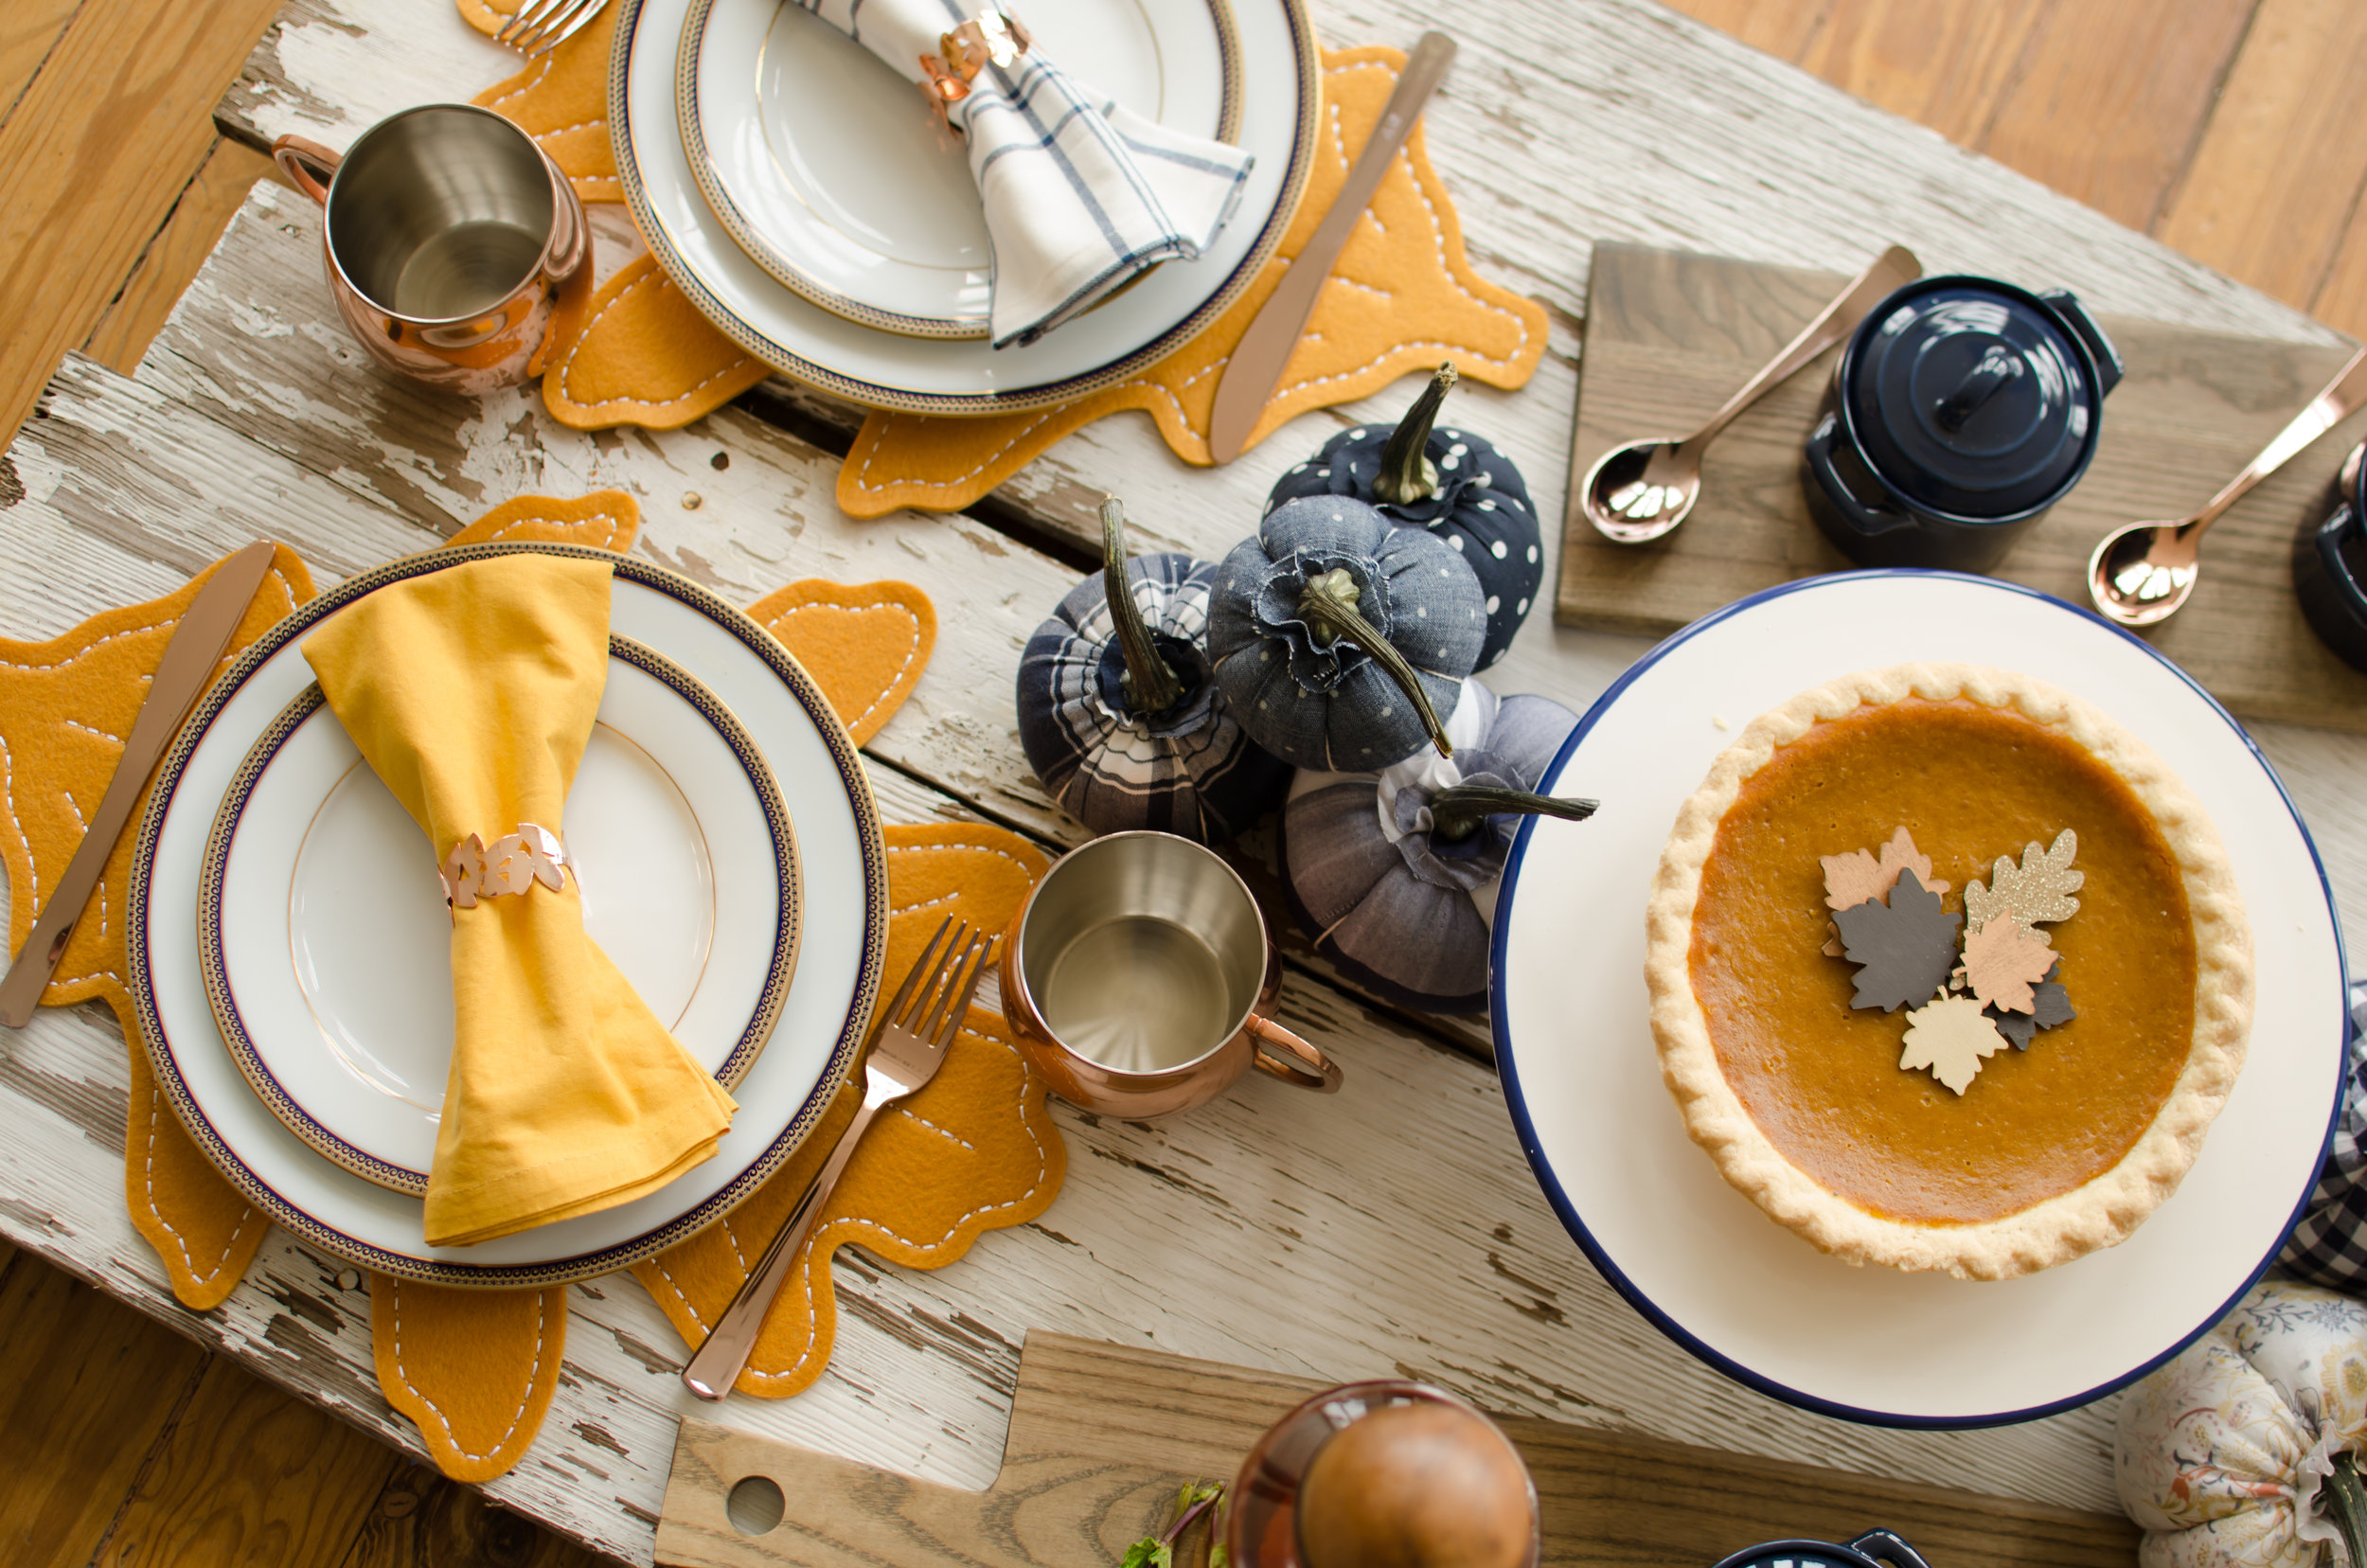 Thanksgiving table styling ideas including colors of blue and copper with fabric covered pumpkins. Click to see how to combine cozy and rustic decorations with your Thanksgiving Table Setting from party planner, Mint Event Design in Austin, Texas on www.minteventdesign.com #thanksgiving #thanksgivingdecorations #tablescape #thanksgivingtable #pumpkins #tablesettings #fallparty from Mint Event Design